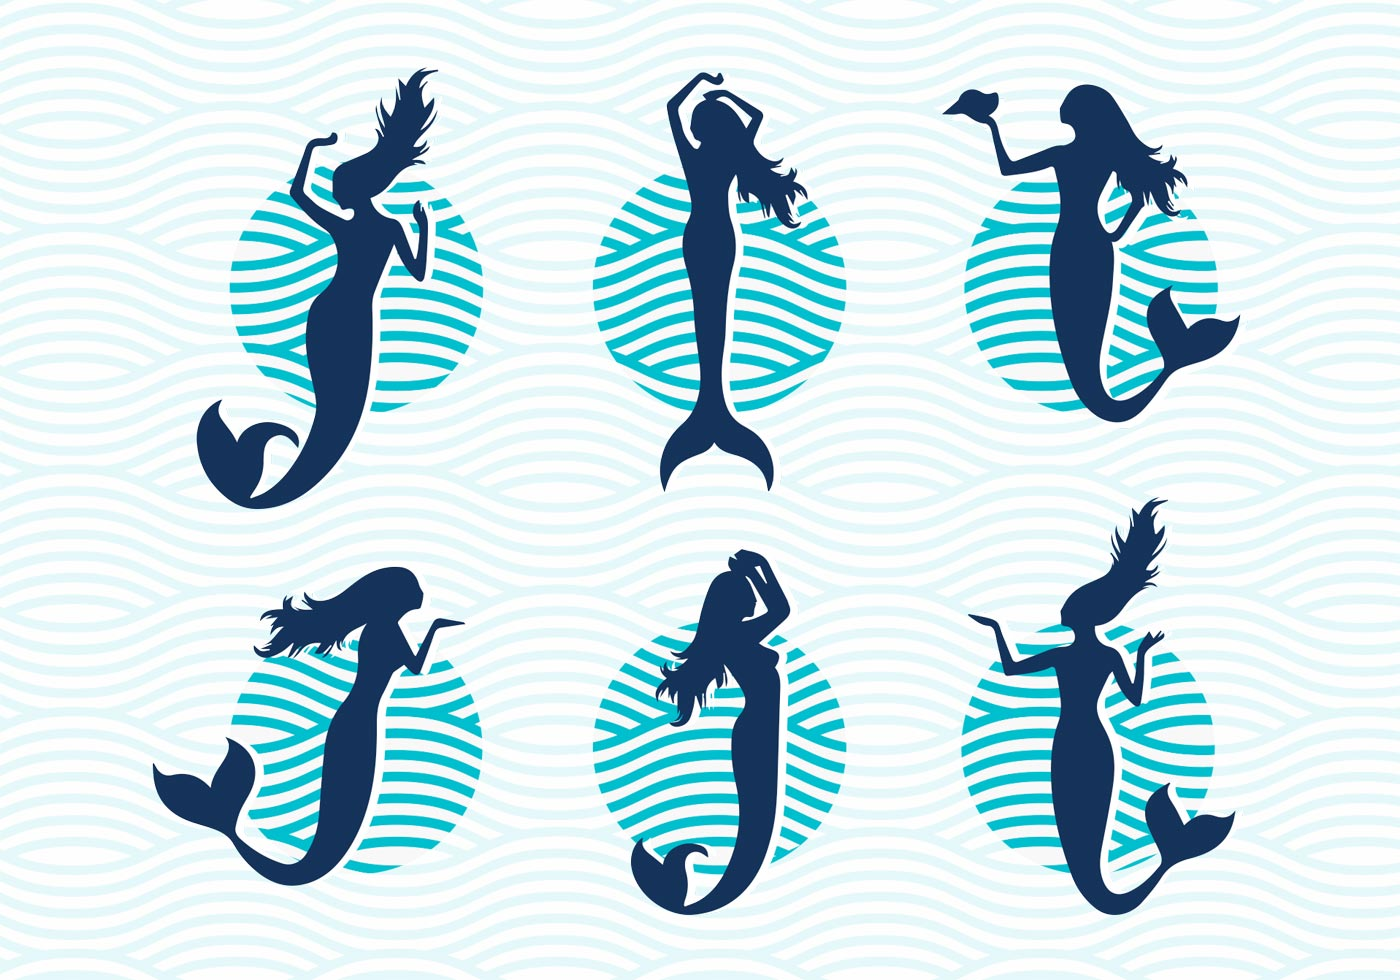 mermaids vector silhouettes illustrations free download free